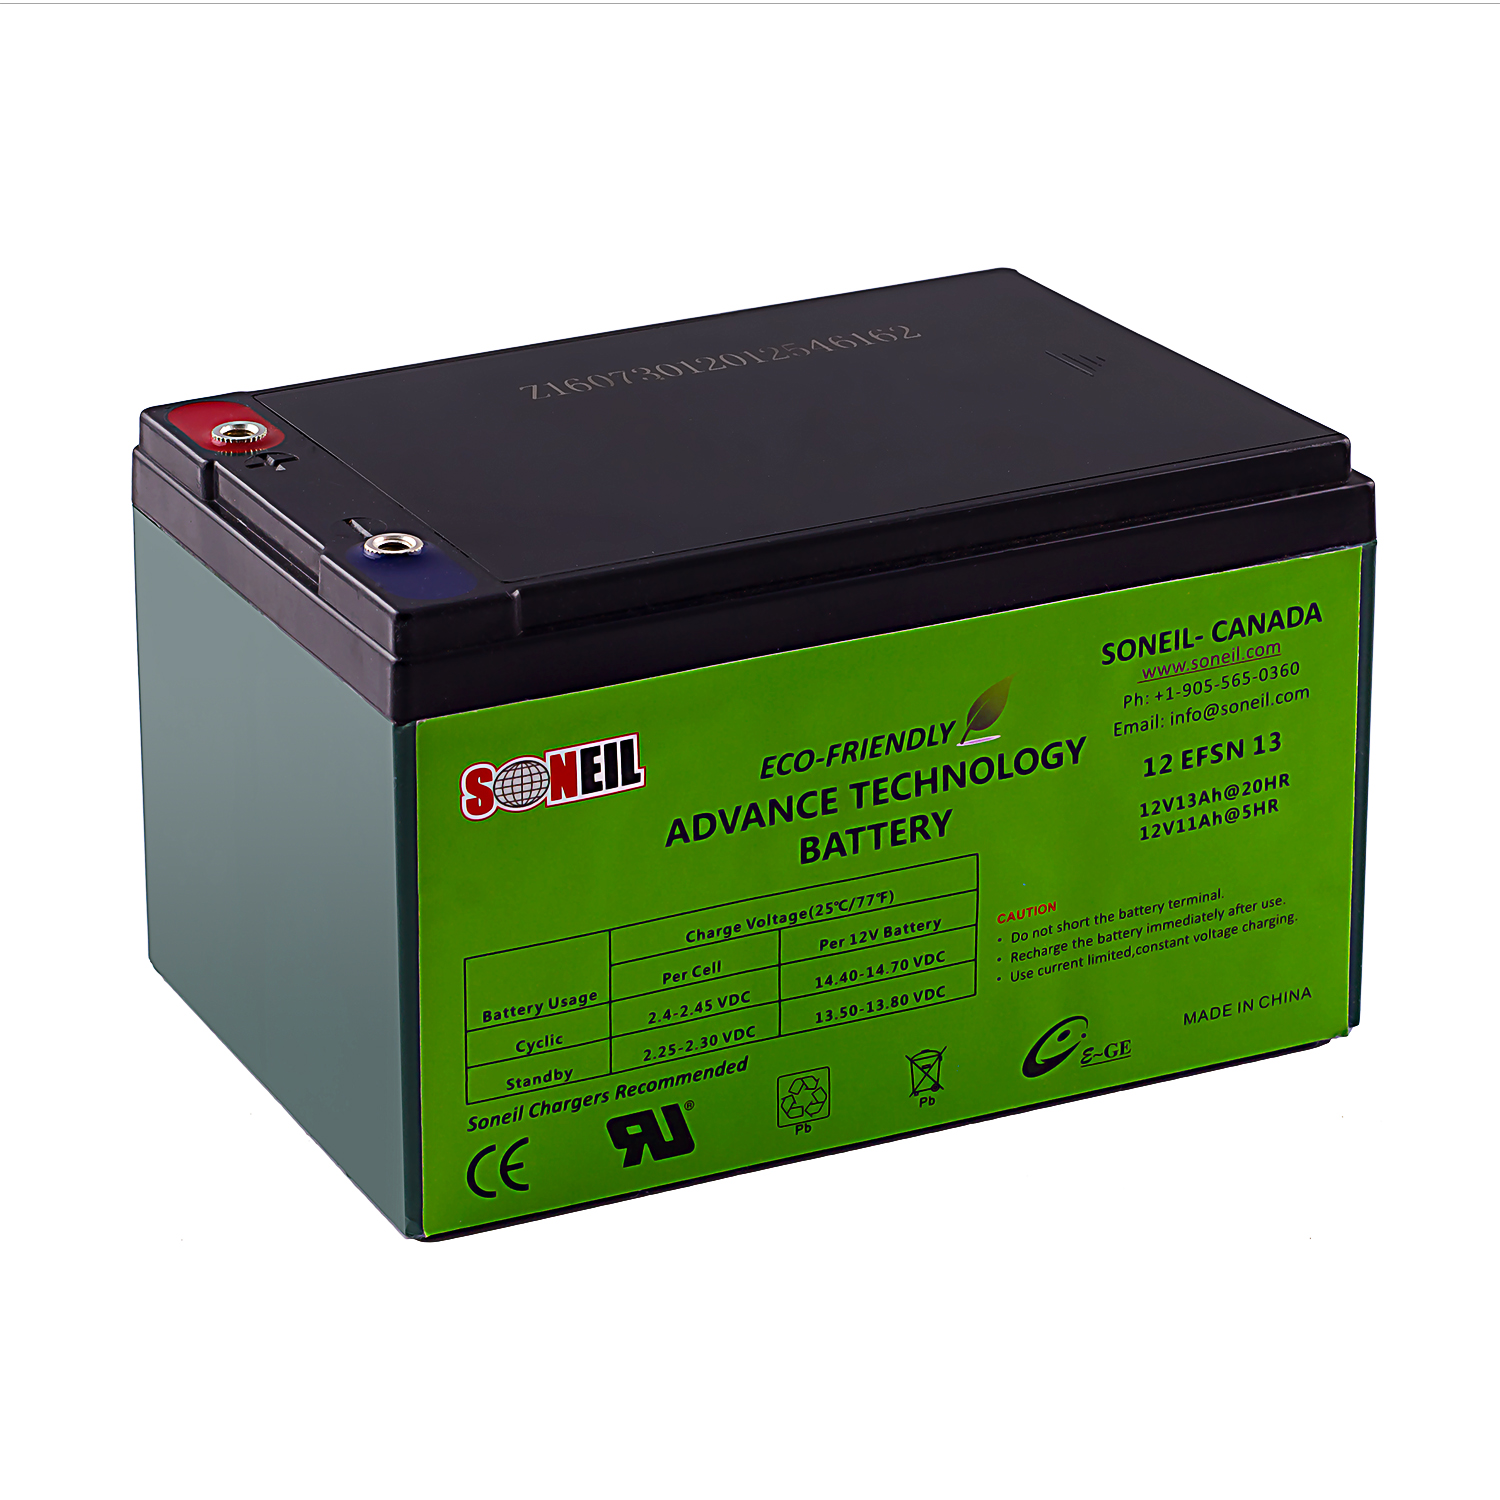 12V 13AH Advance Technology Battery